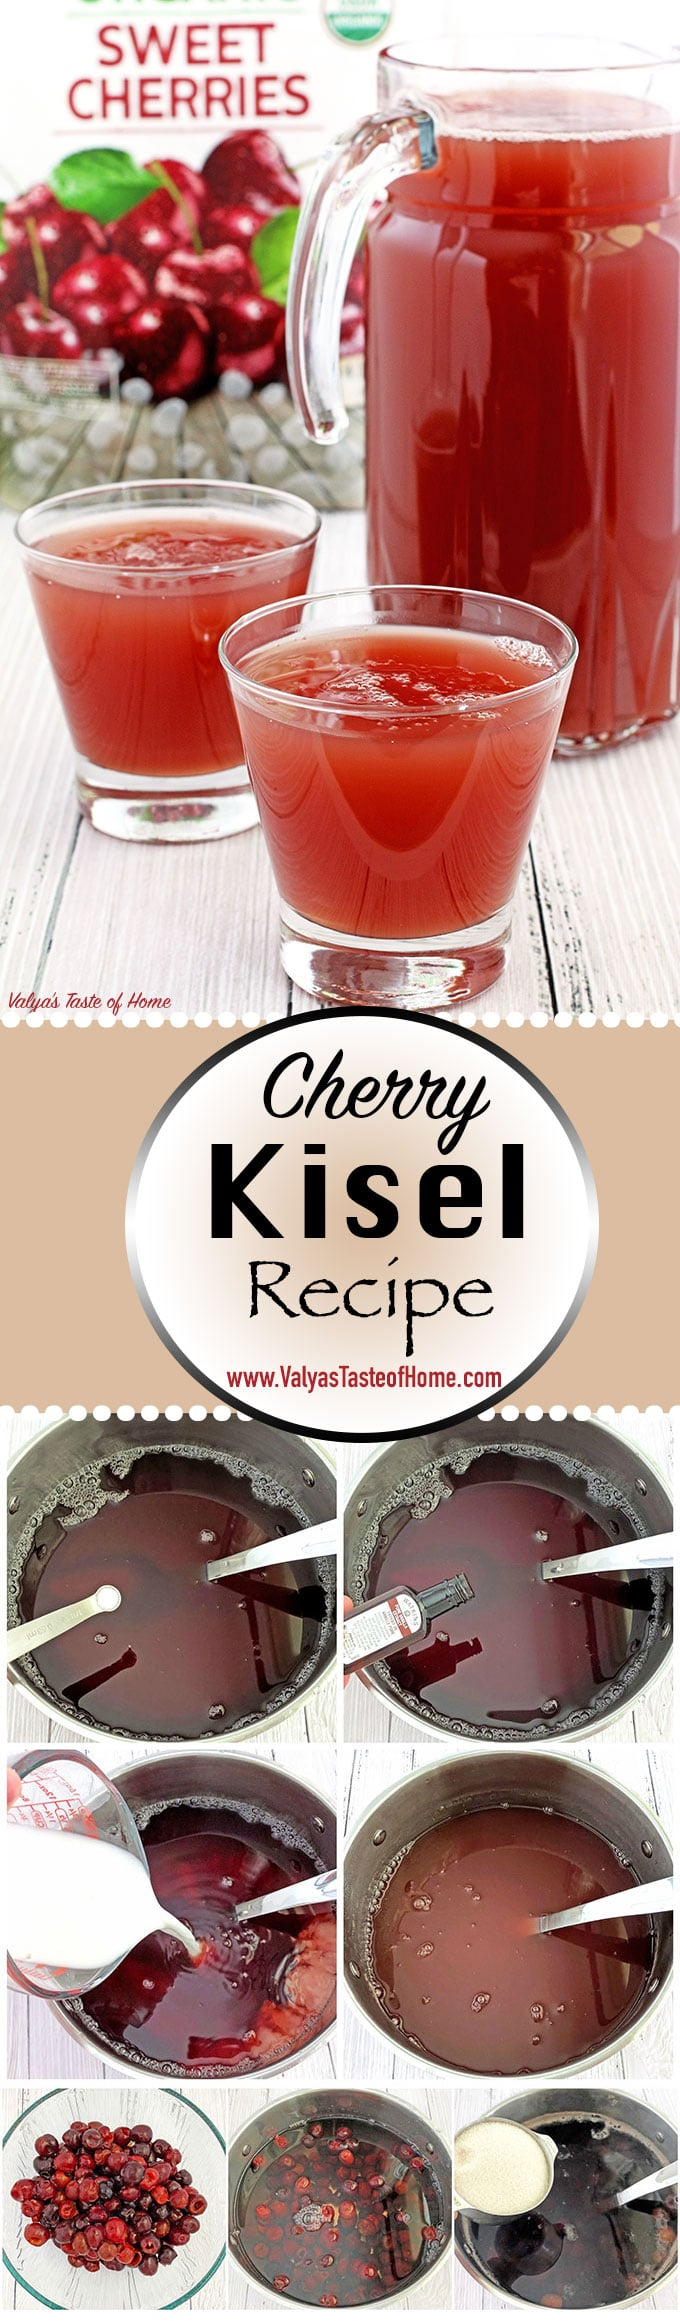 Cherry Kisel Recipe, delicious, fruit beverage, fruit drink, fruit drink recipe, homemade fruit drink, jello drink, kisel, kisil, kissel, organic cherries, organic sugar, pudding drink